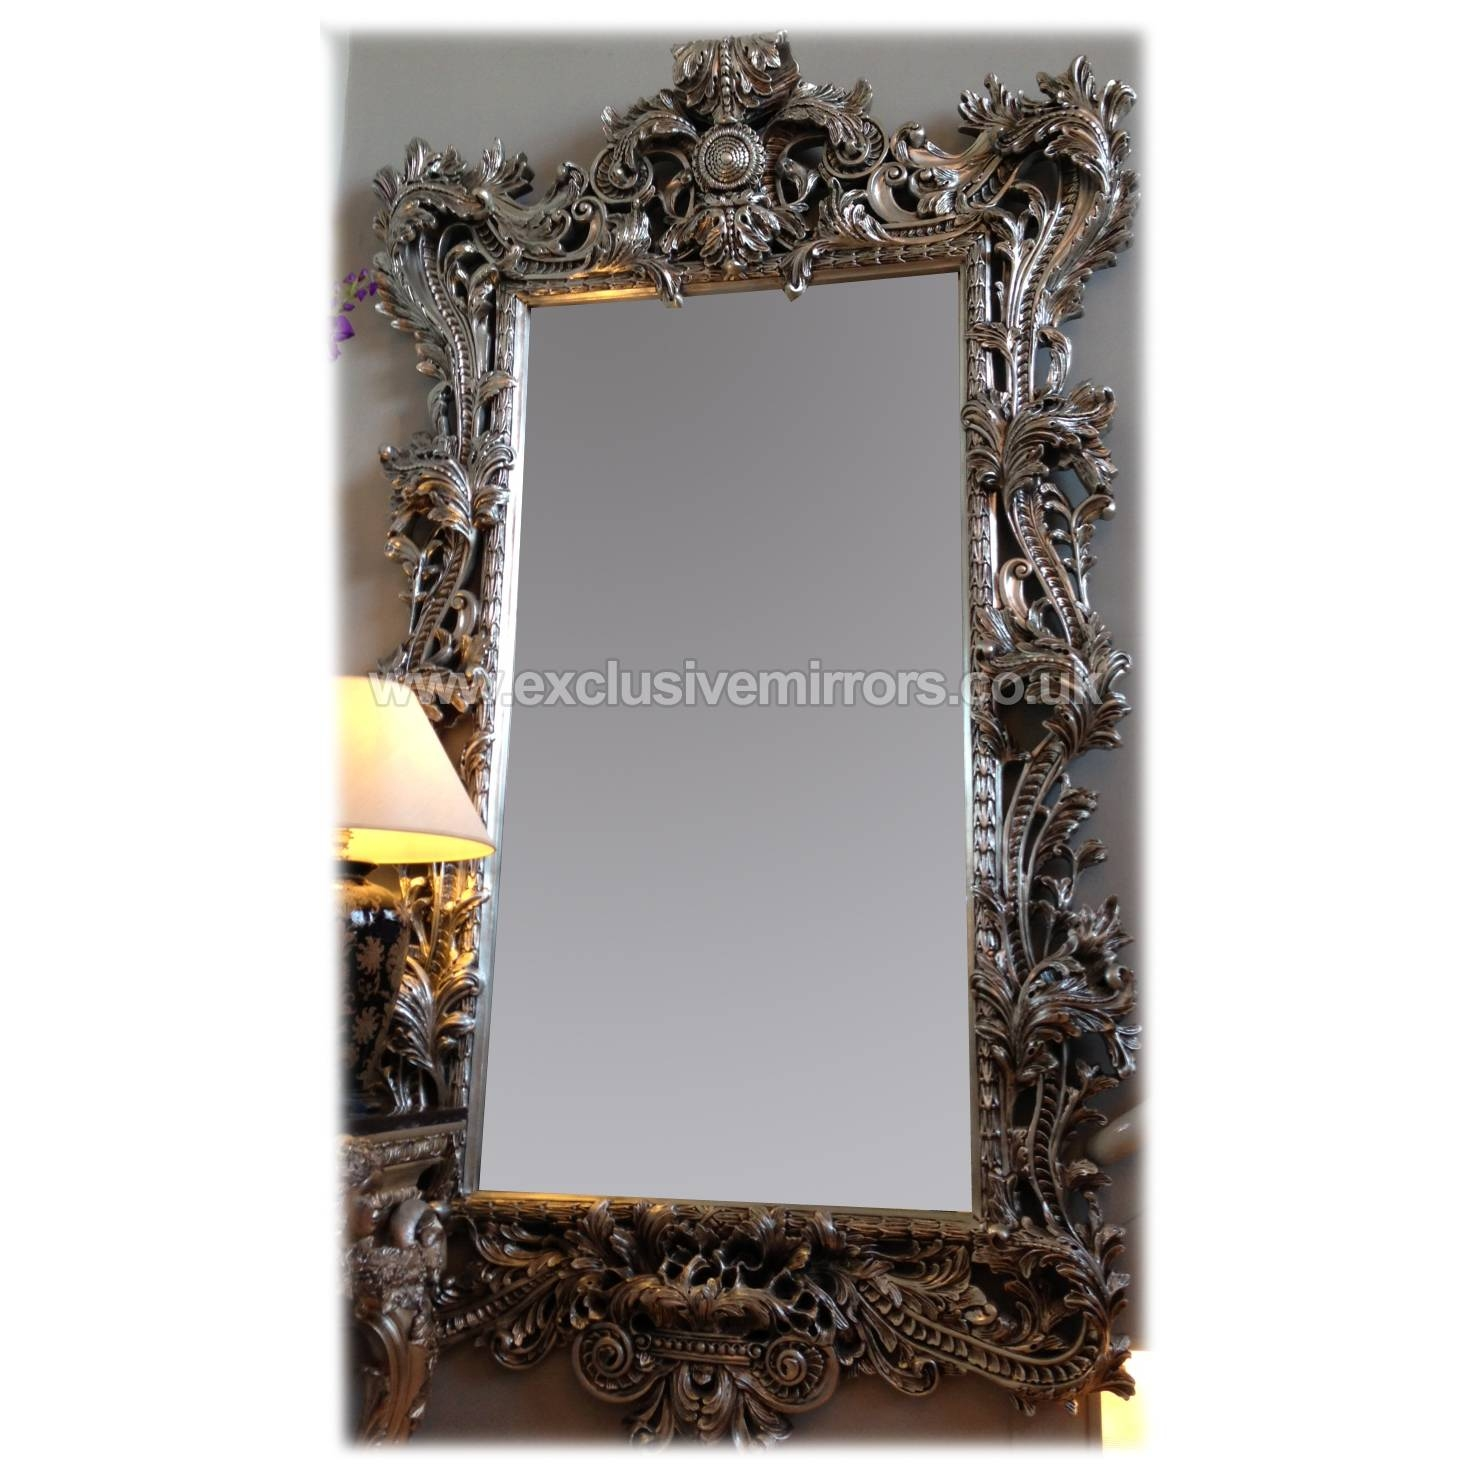 Extra Large Wall Mirrors 109 Cute Interior And Large Gold Very throughout Ornate Gold Mirrors (Image 11 of 25)